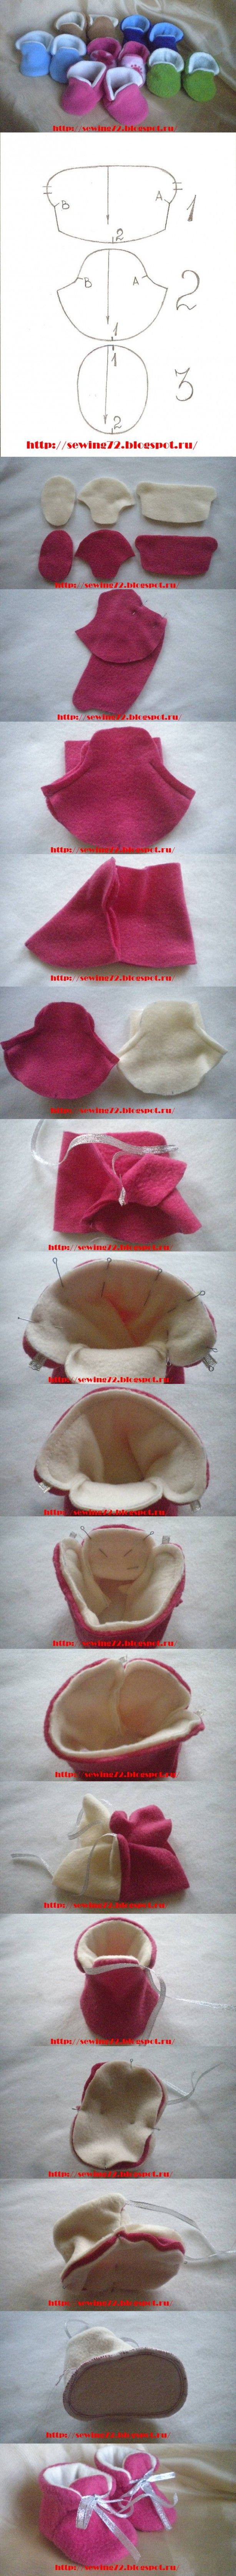 diy, tutorial, how to, instructions for doll booties